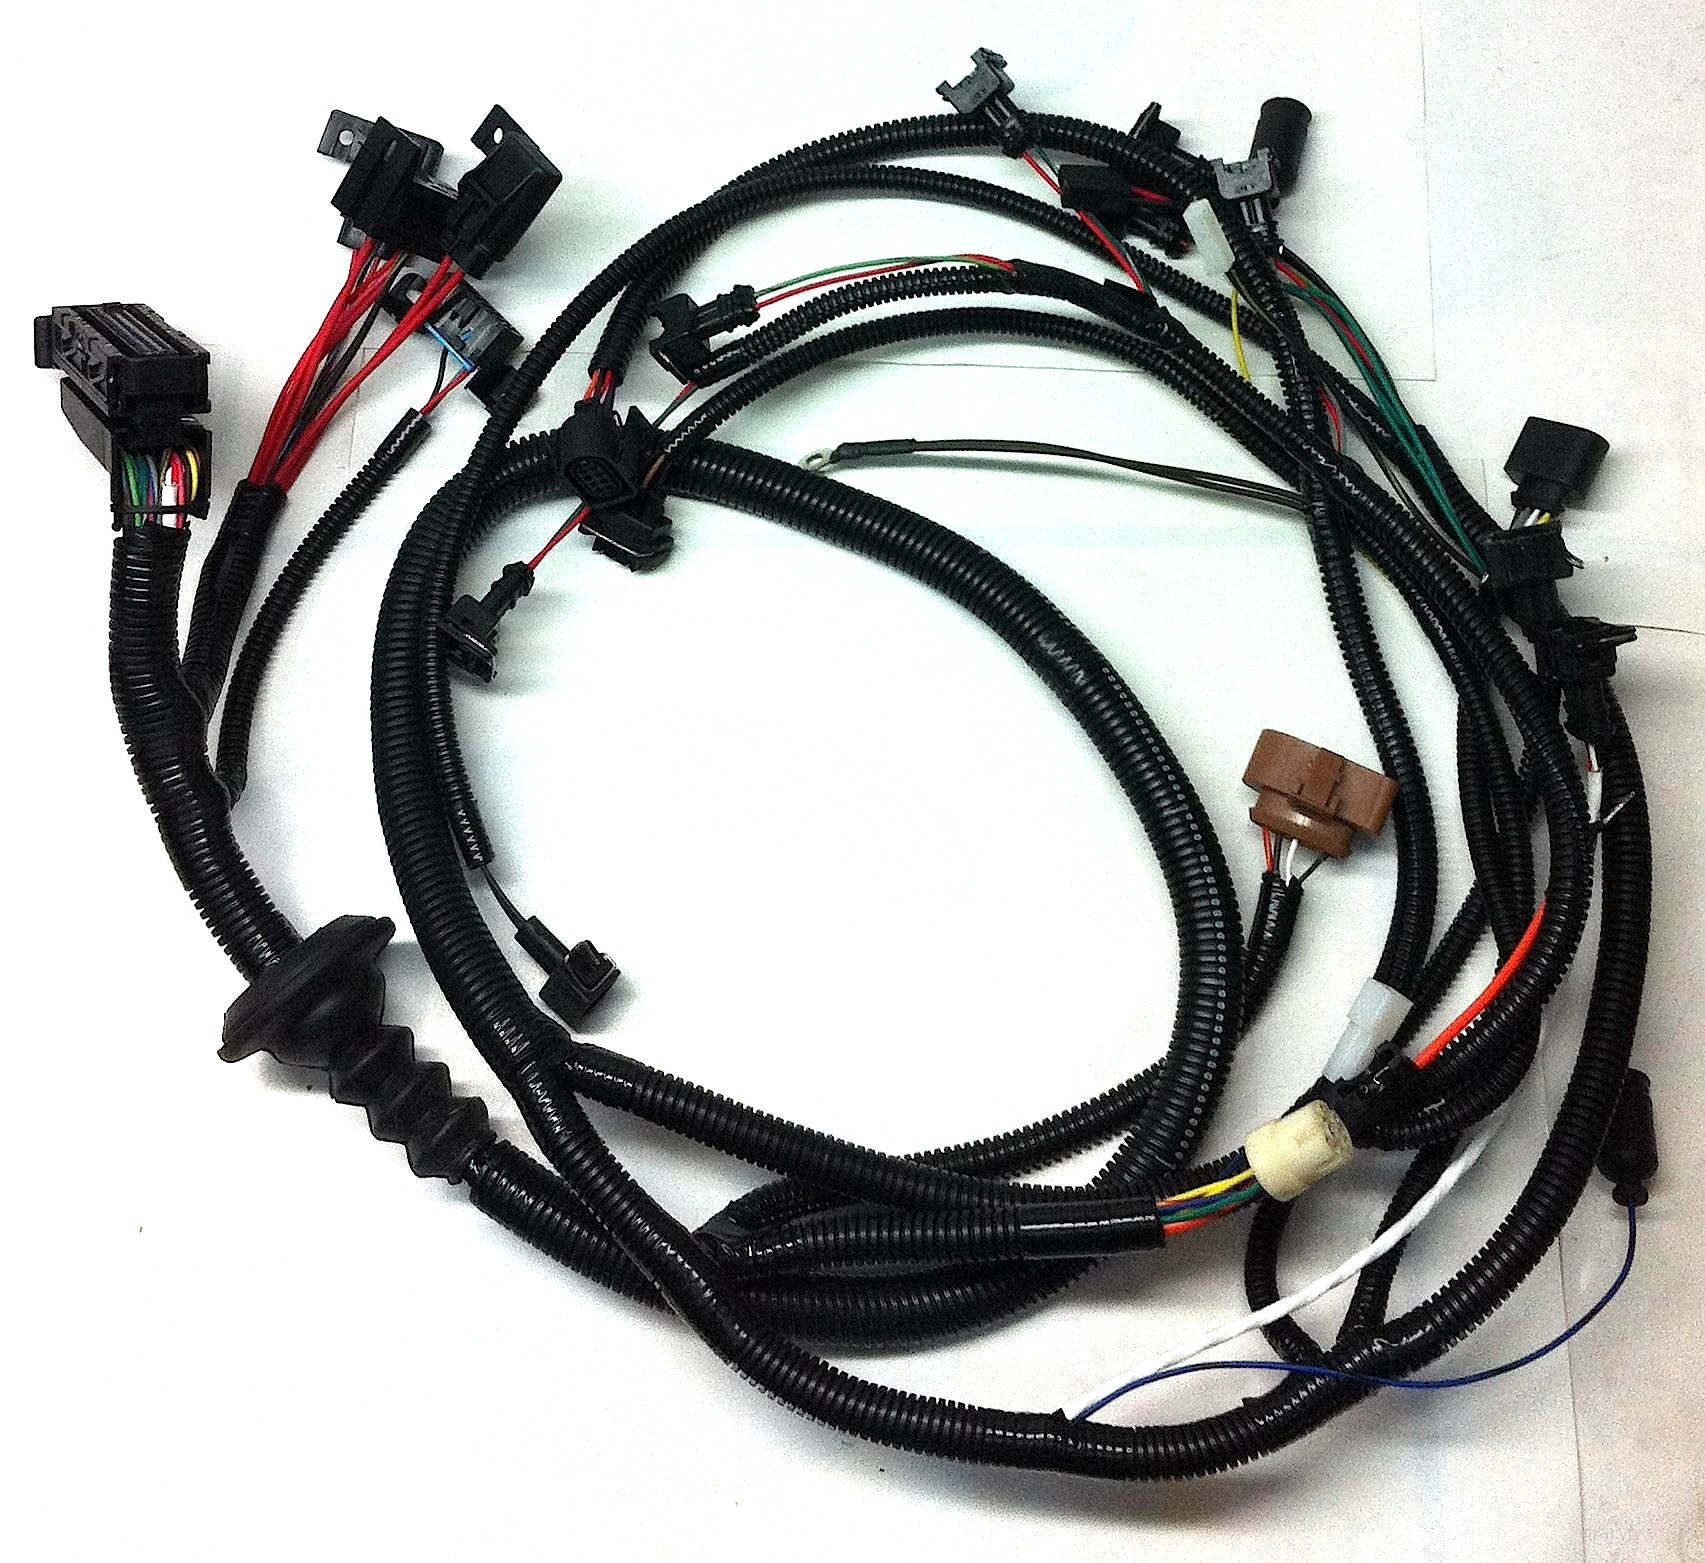 Wiring_Harness_2LR 2lr tiico conversion wiring harness foreign auto & supply, inc vehicle wiring harness at nearapp.co